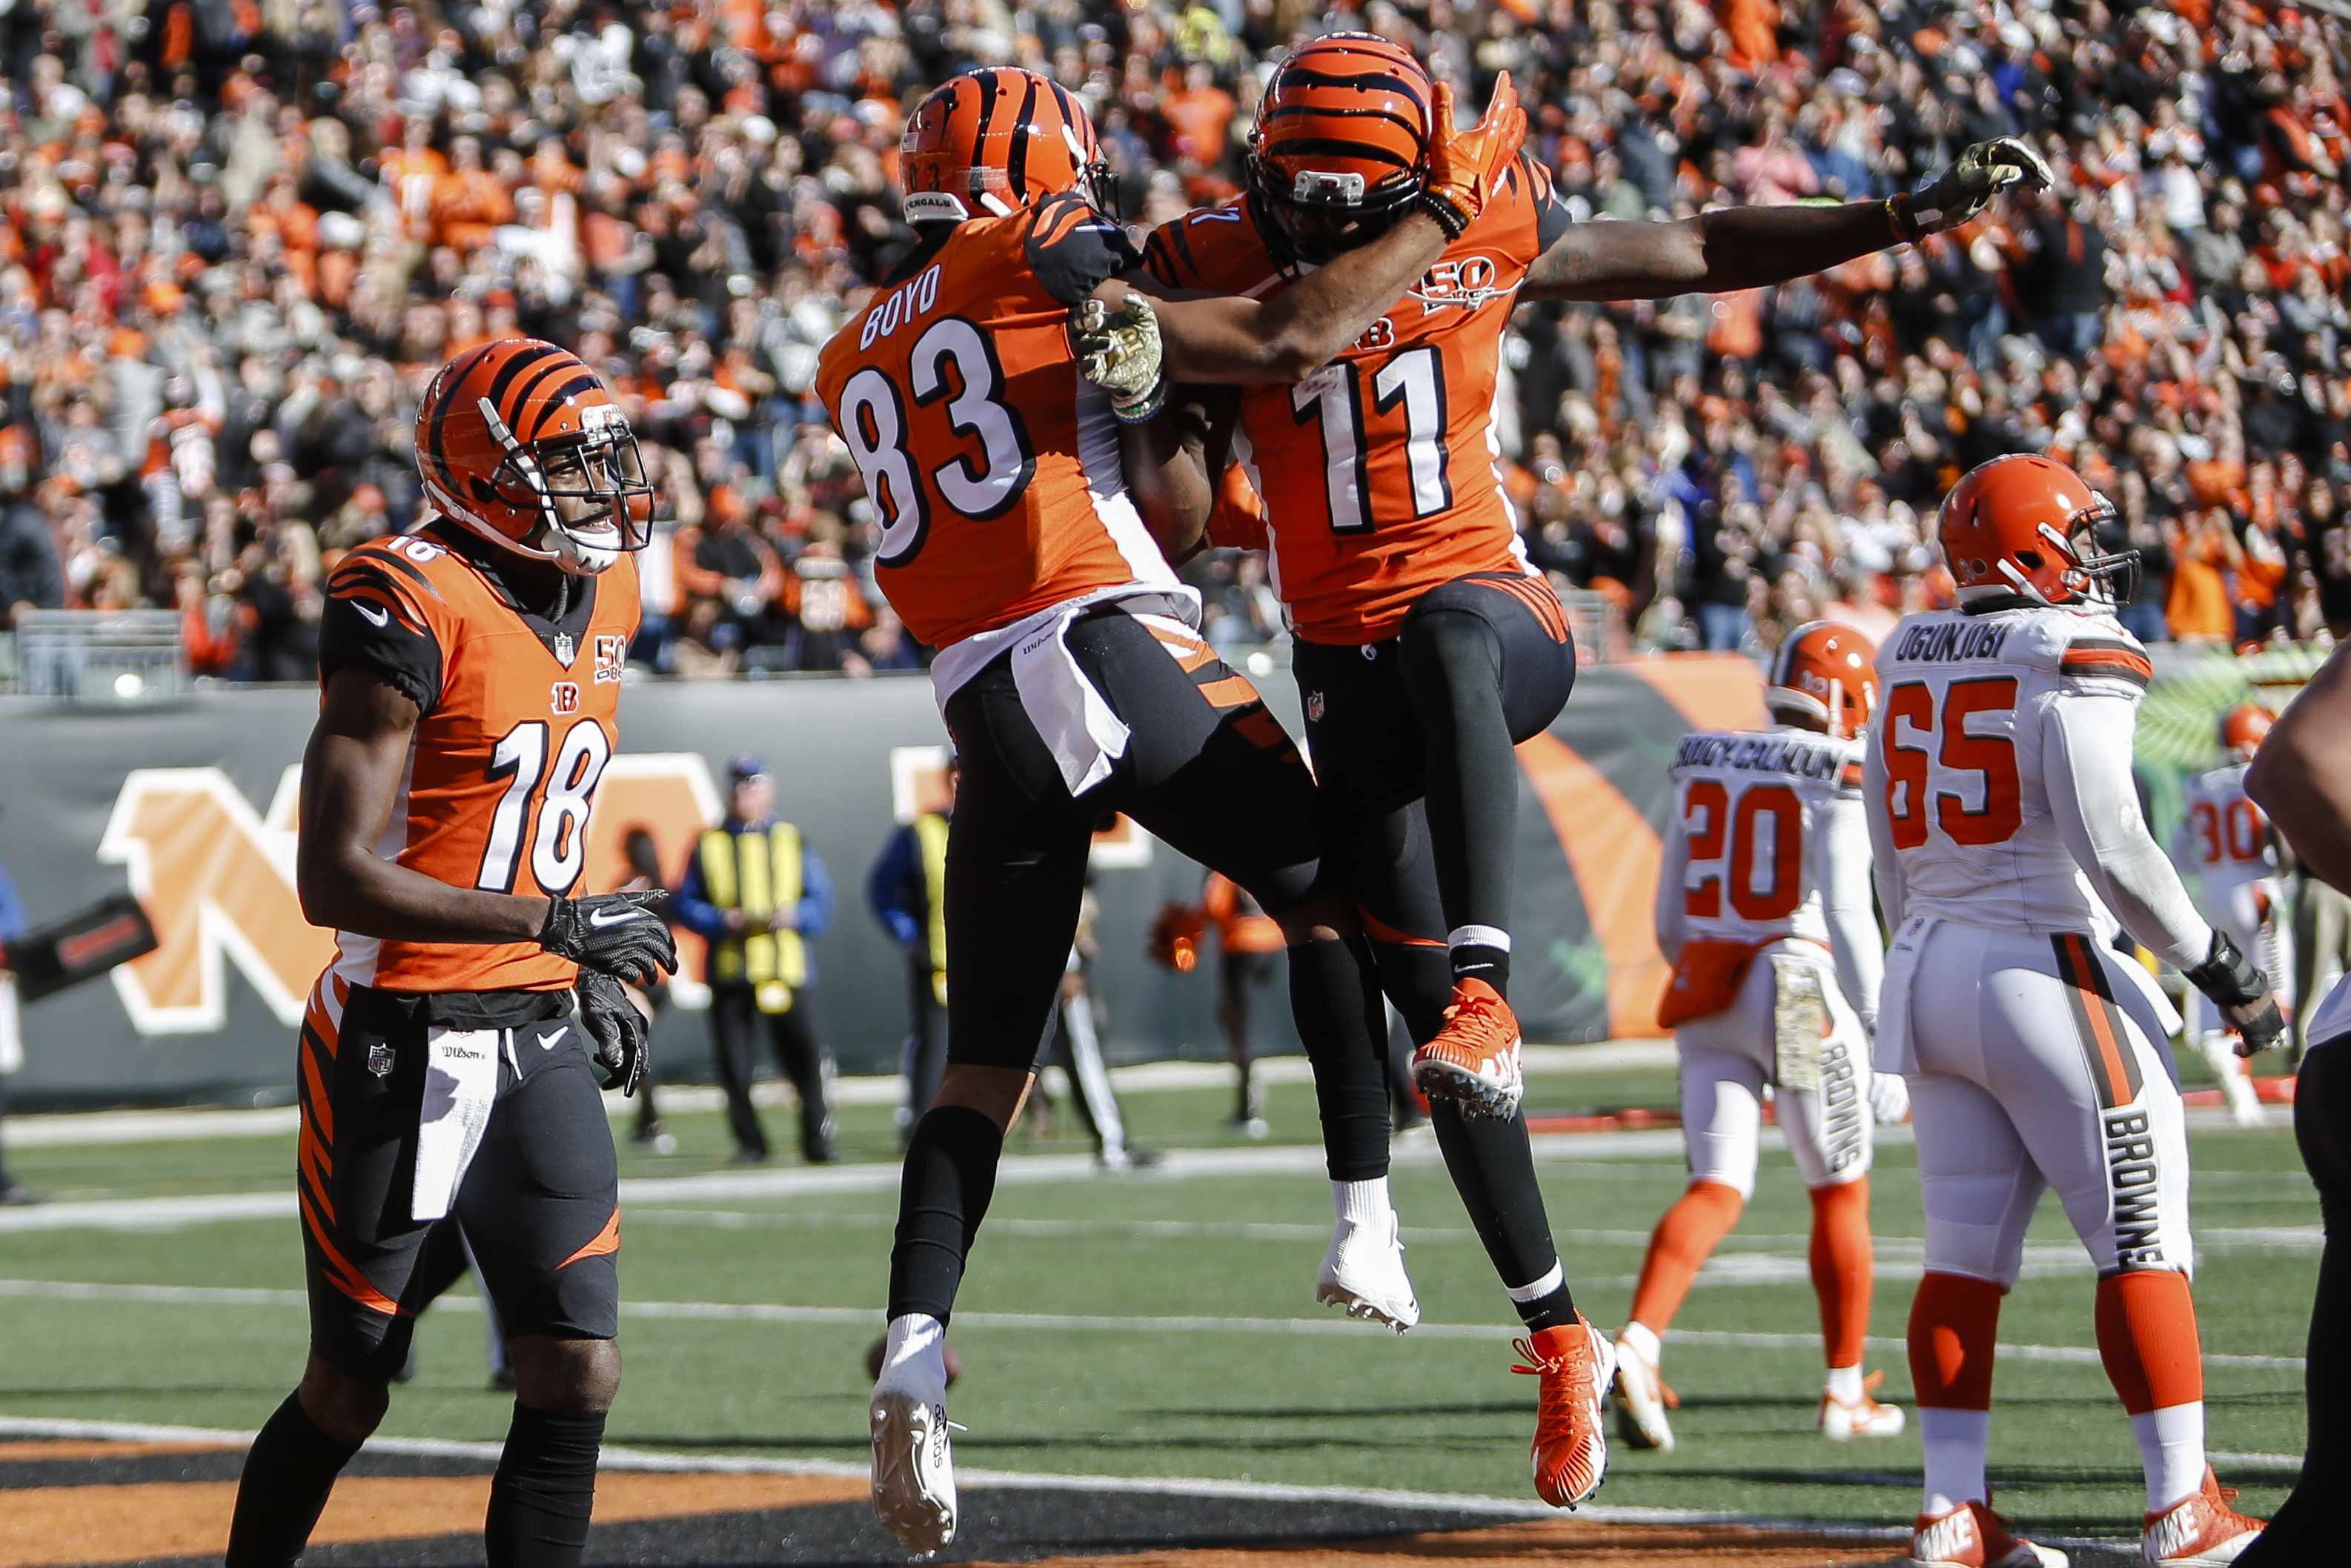 Cincinnati Bengals wide receiver Tyler Boyd (83) celebrates with wide receiver Brandon LaFell (11) after scoring a touchdown in the first half of an NFL football game against the Cleveland Browns, Sunday, Nov. 26, 2017, in Cincinnati. (AP Photo/Frank Victores)